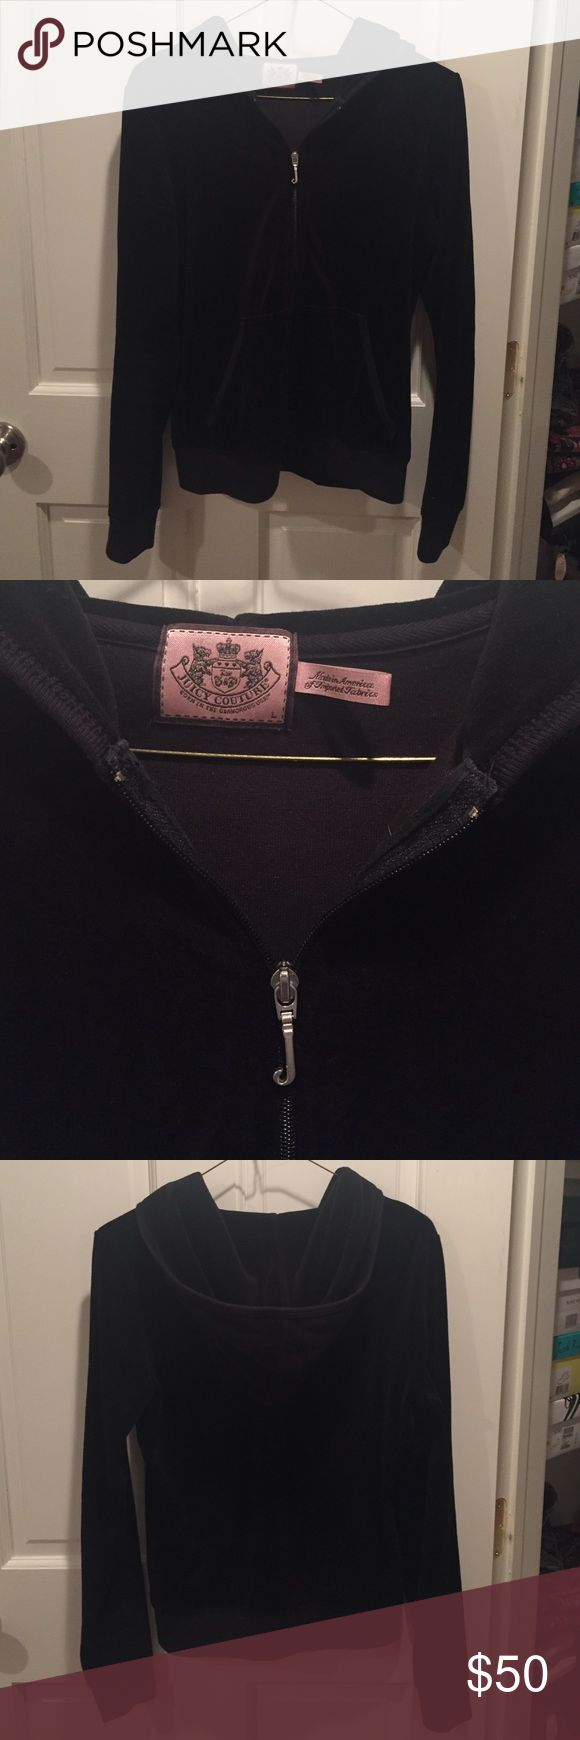 Juicy Couture Velour Jacket Gently used, working zipper, great condition Juicy Couture Jackets & Coats